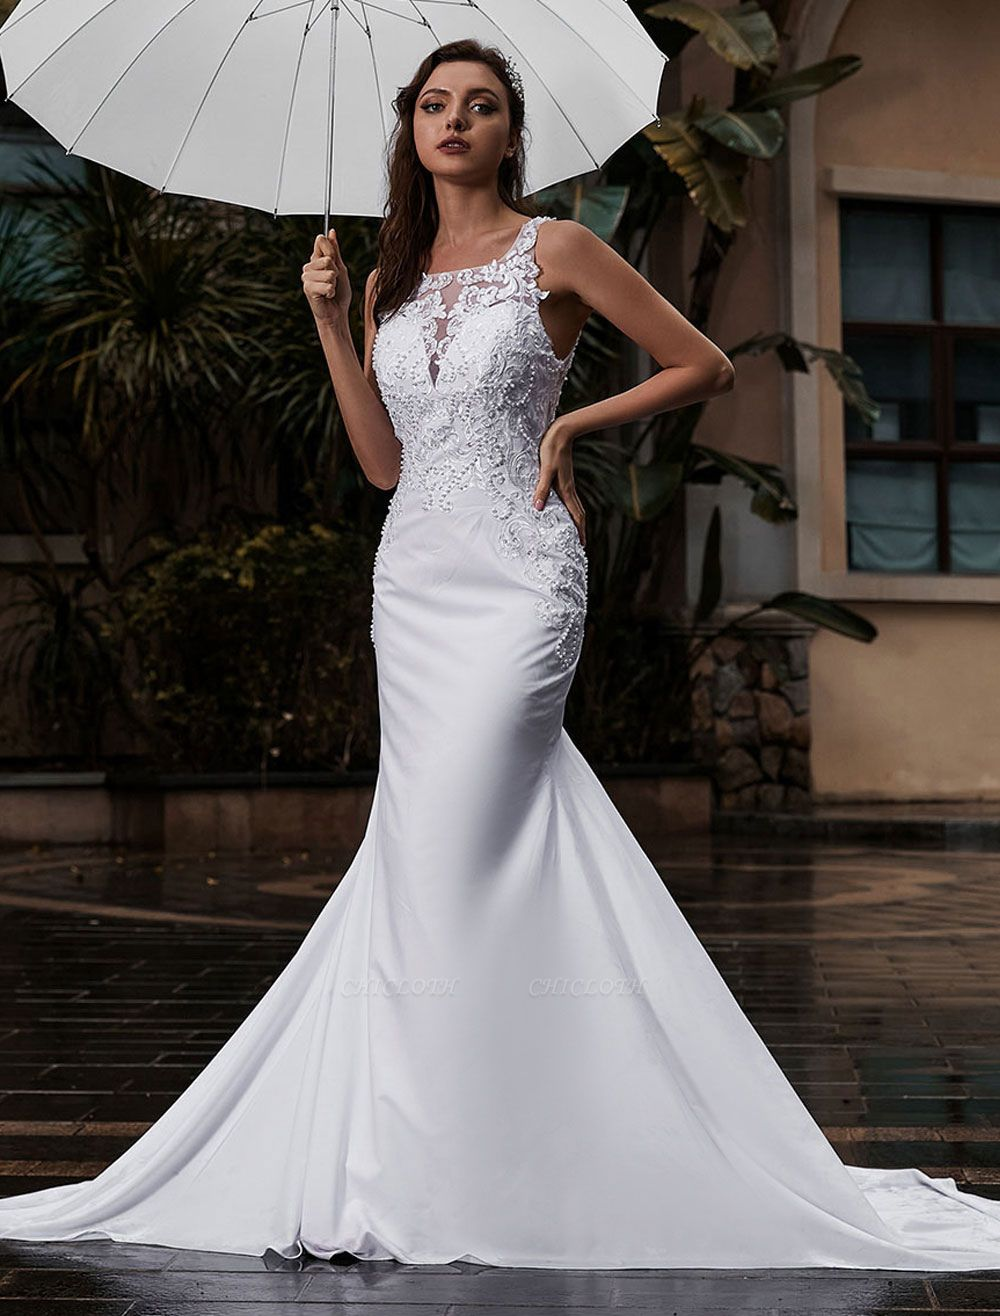 Customize Wedding Gowns With Train Sleeveless Beaded Square Neck Bridal Gowns